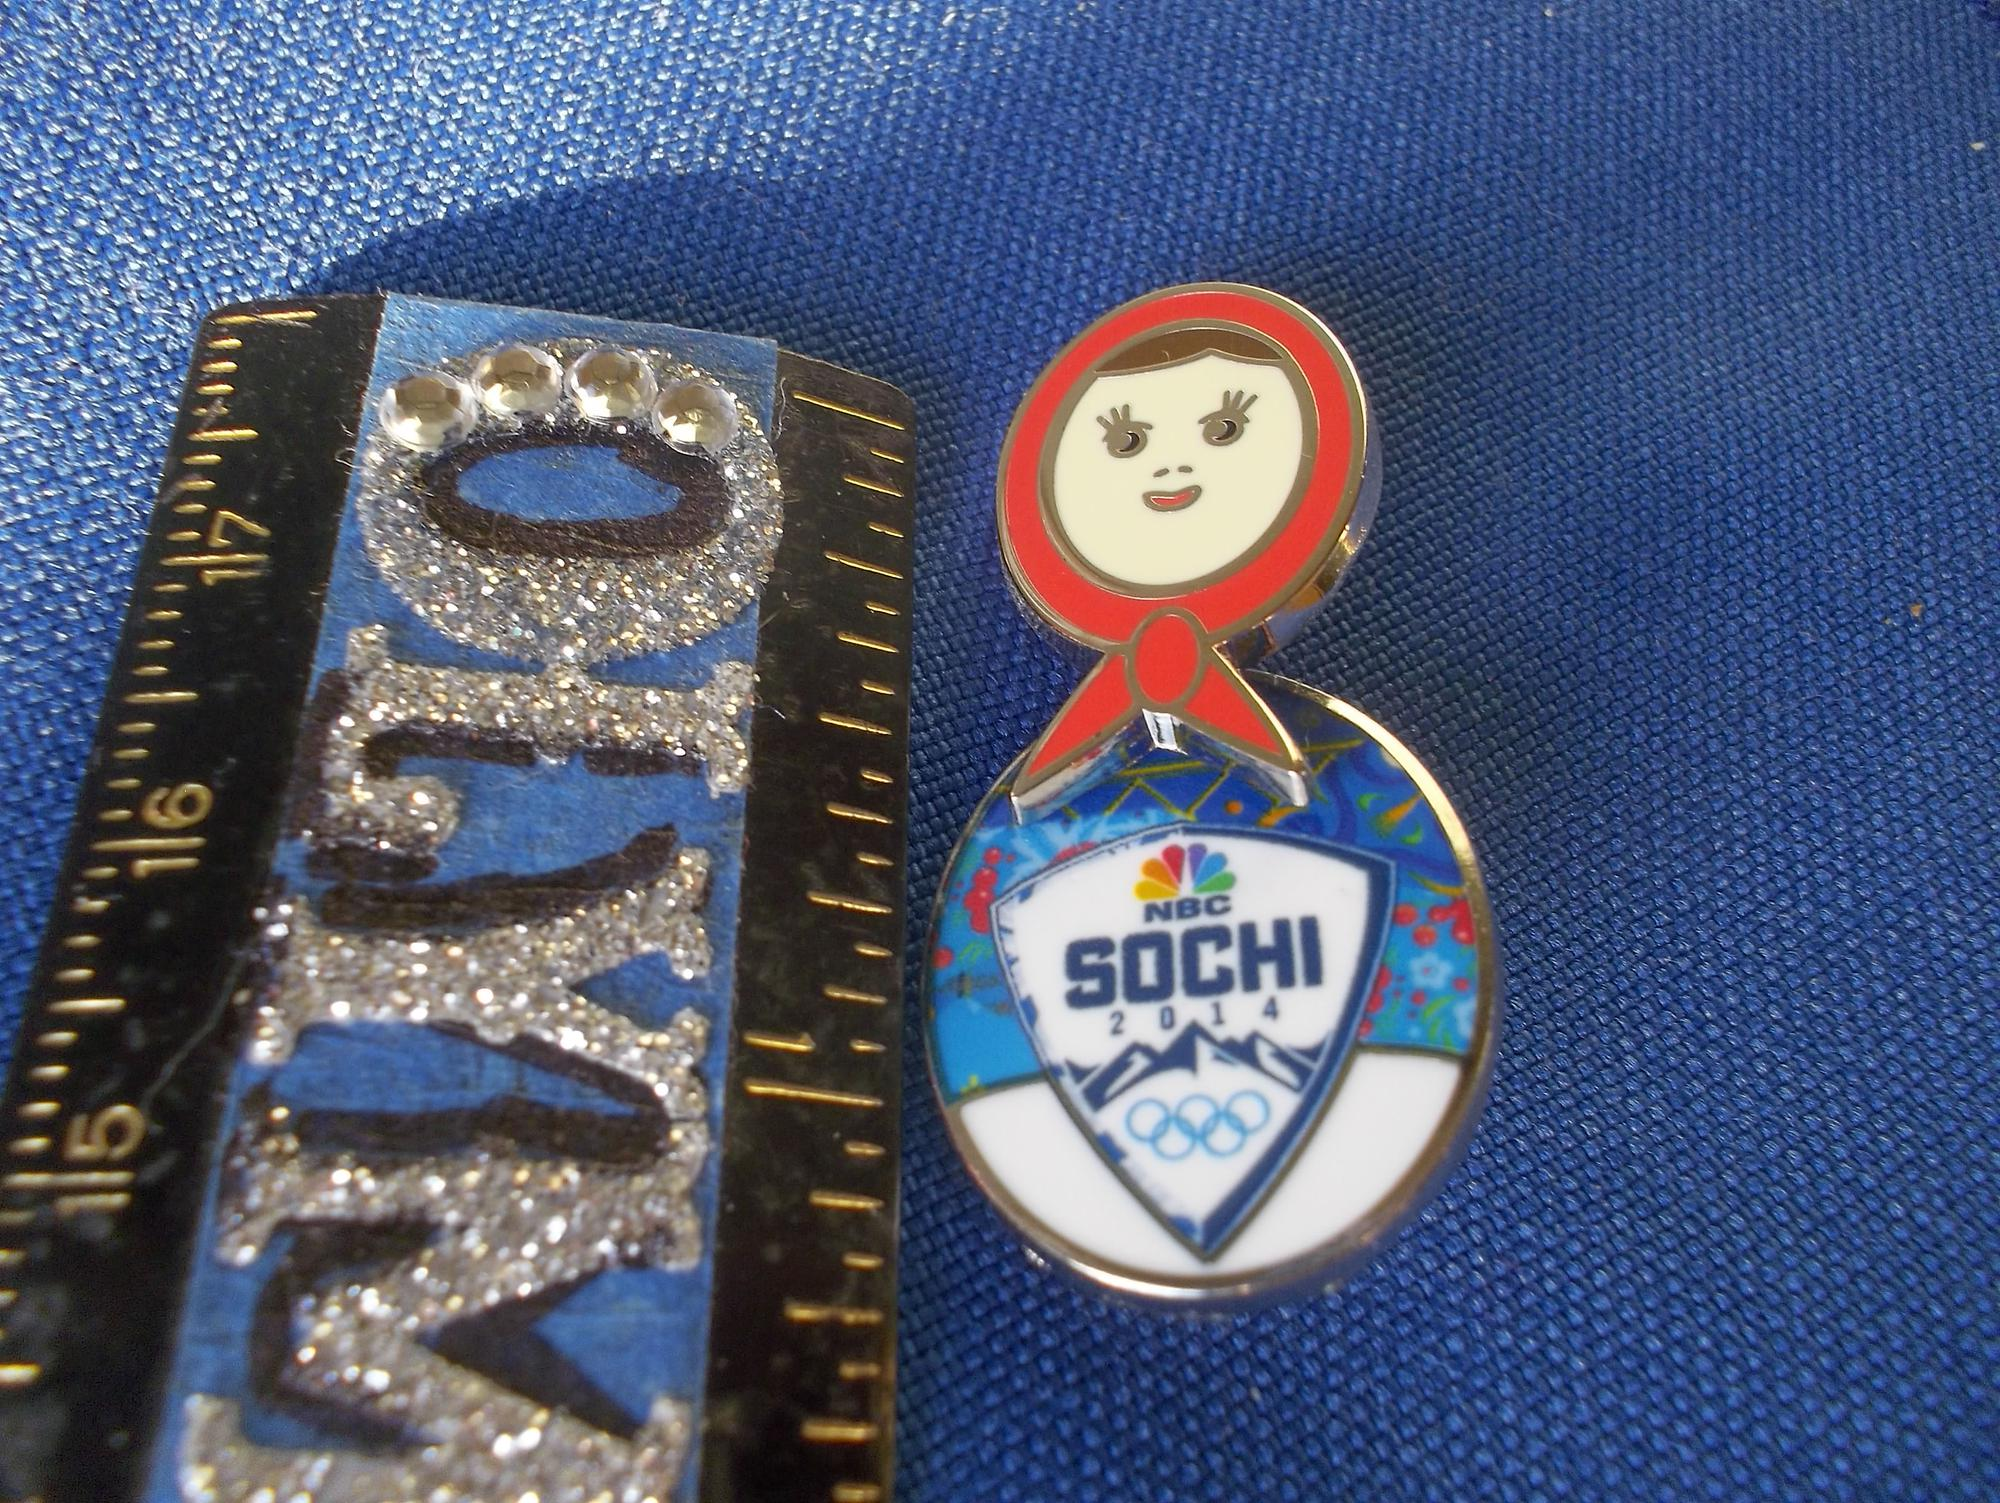 Sochi 2014 NBC Matryoshka Doll Pin